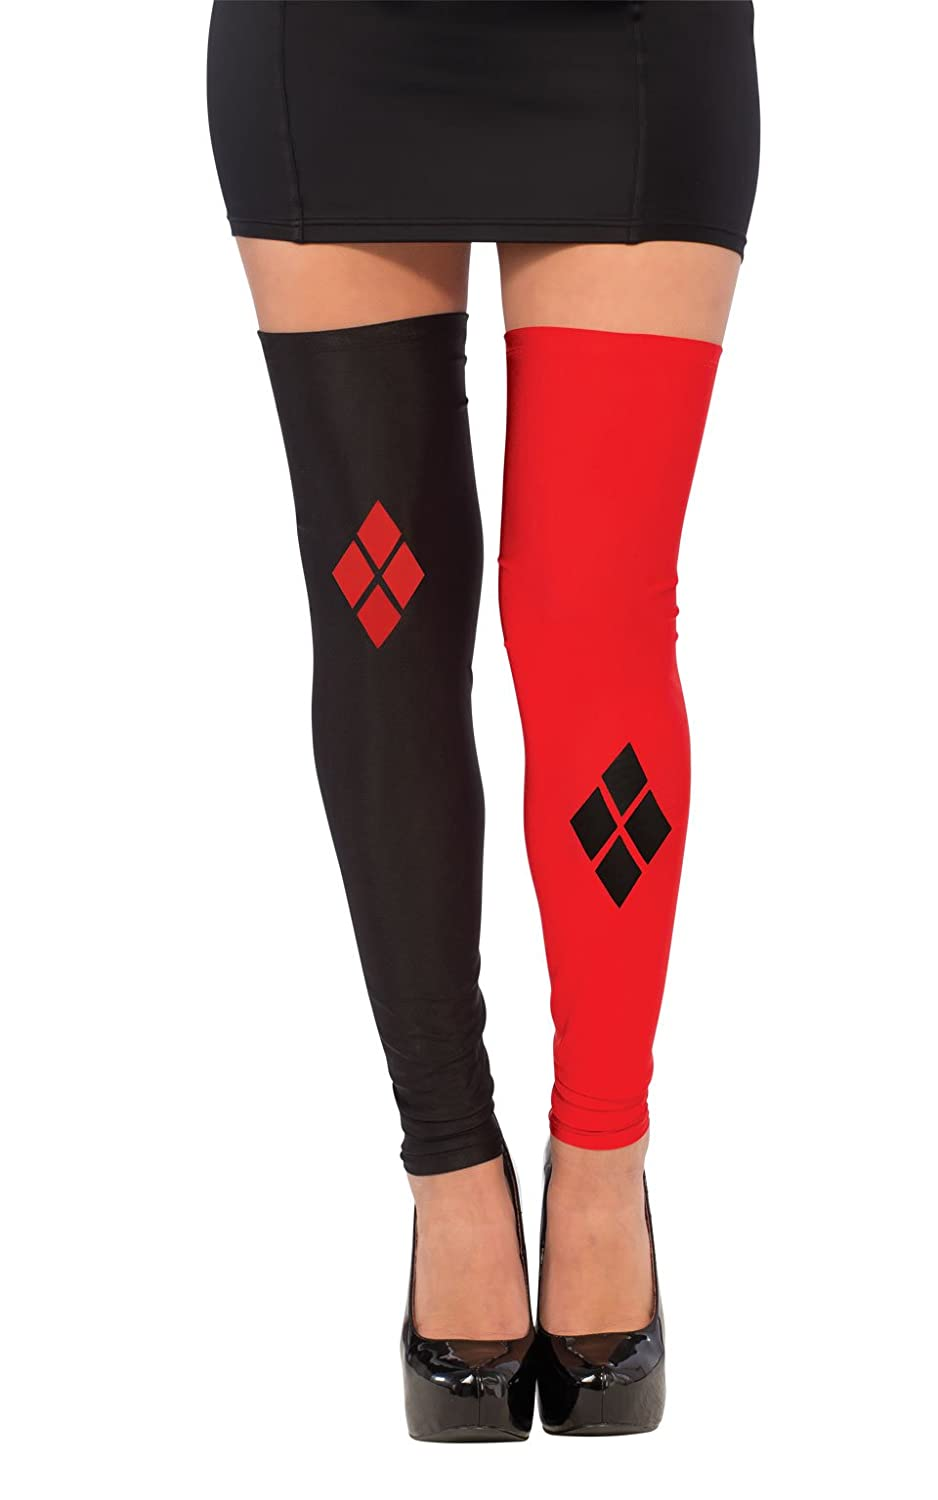 Rubie's Costume Co Women's Dc Superheroes Harley Quinn Thigh Highs Multi One Size Rubies Costumes - Apparel 32232